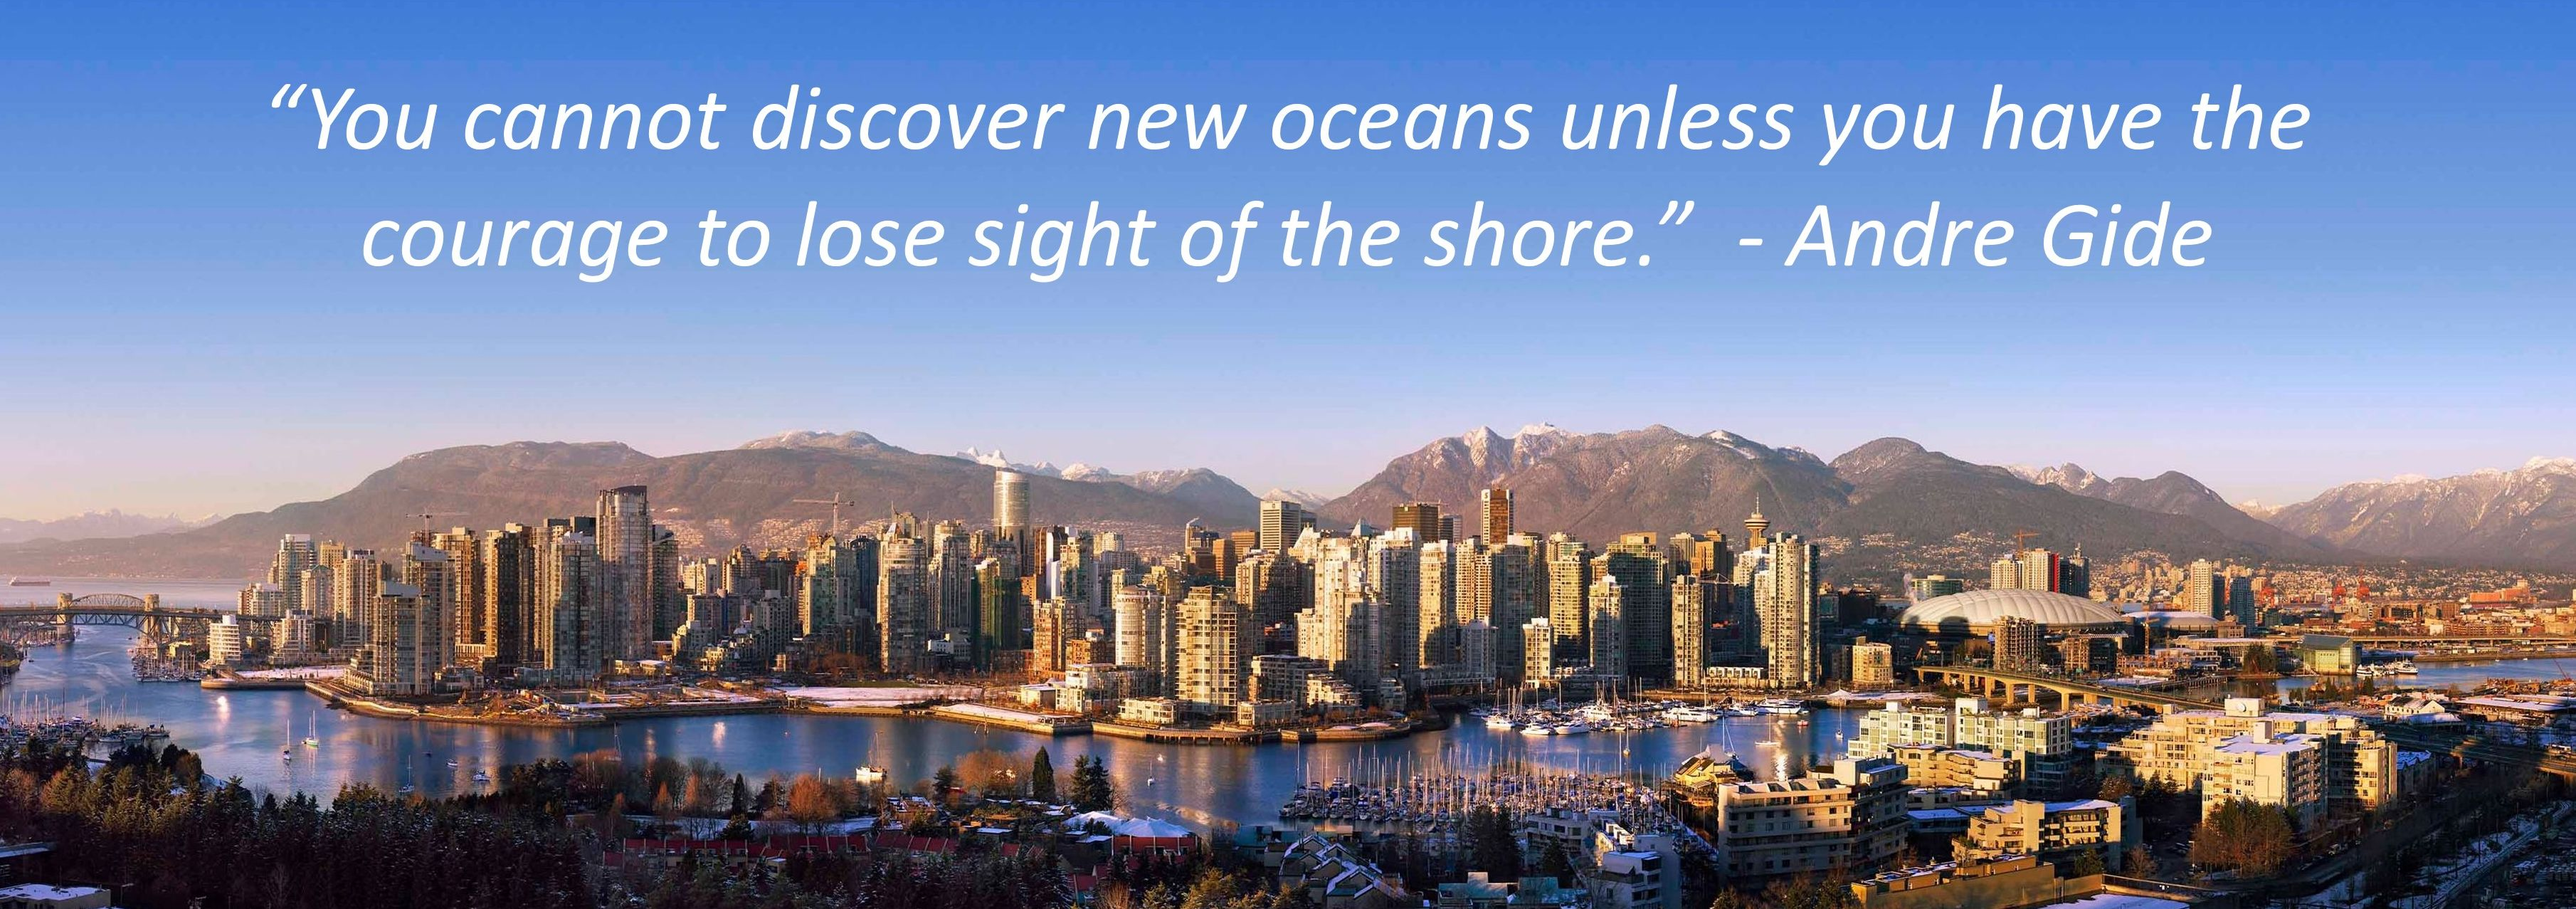 Vancouver skyline with quote - Canada at Crowdfunding Tipping Point – VanFUNDING 2016 scheduled for Oct. 18th in Vancouver